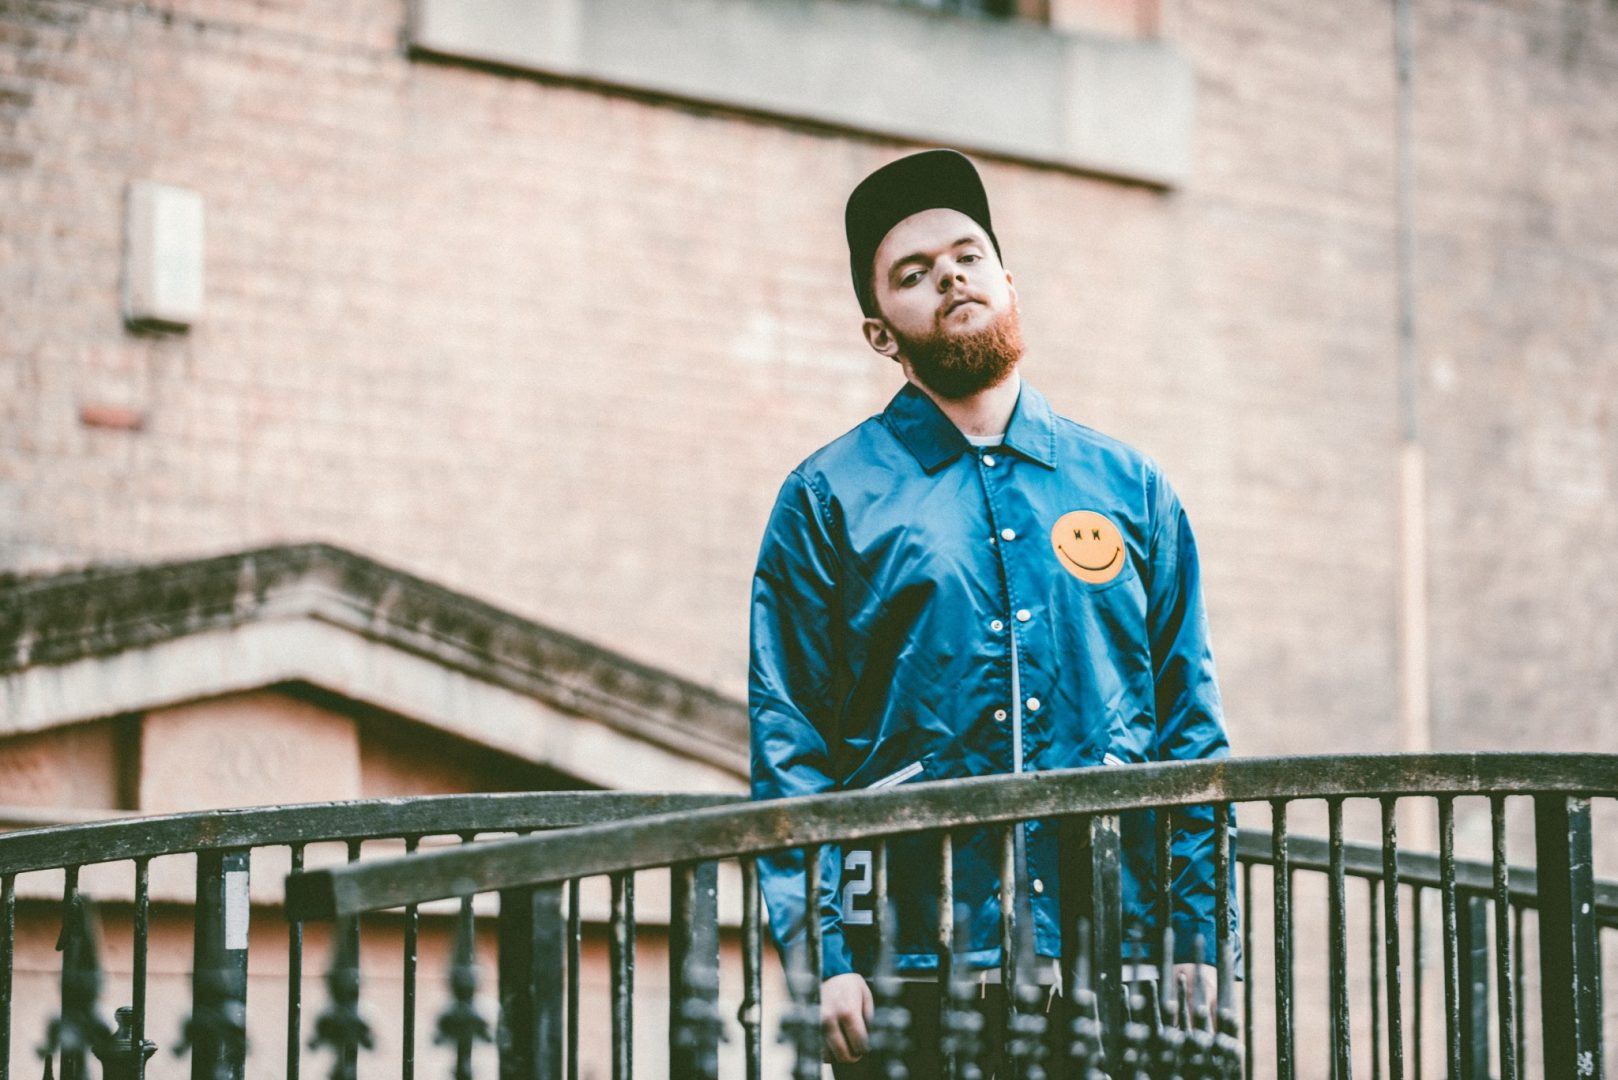 Jack Garratt is happy to say he's in showbiz because he loves attention